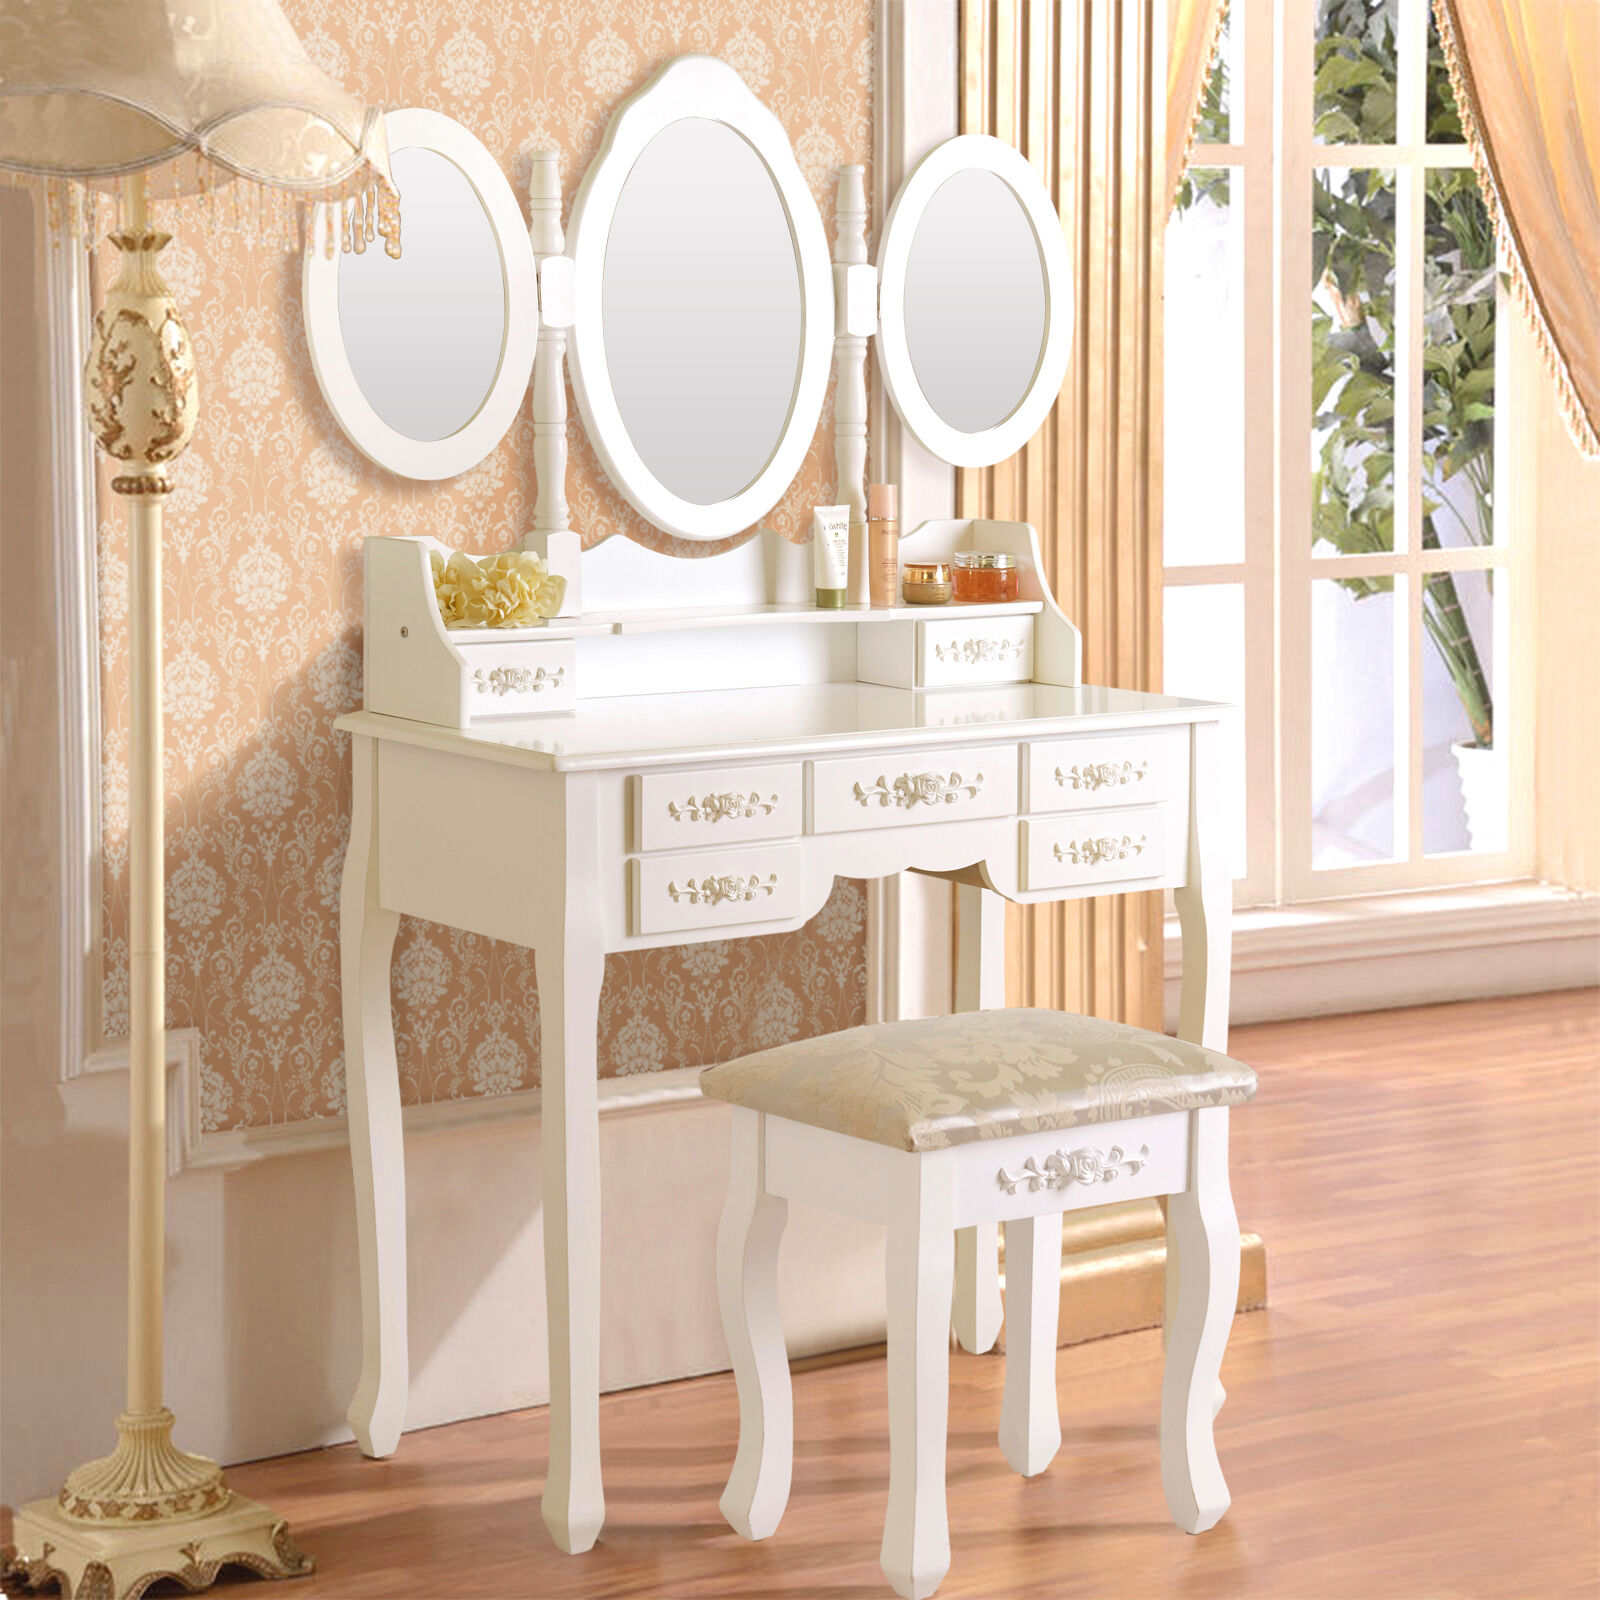 New shabby chic dressing table vanity makeup w 7 drawers for Vanity dressing table with drawers